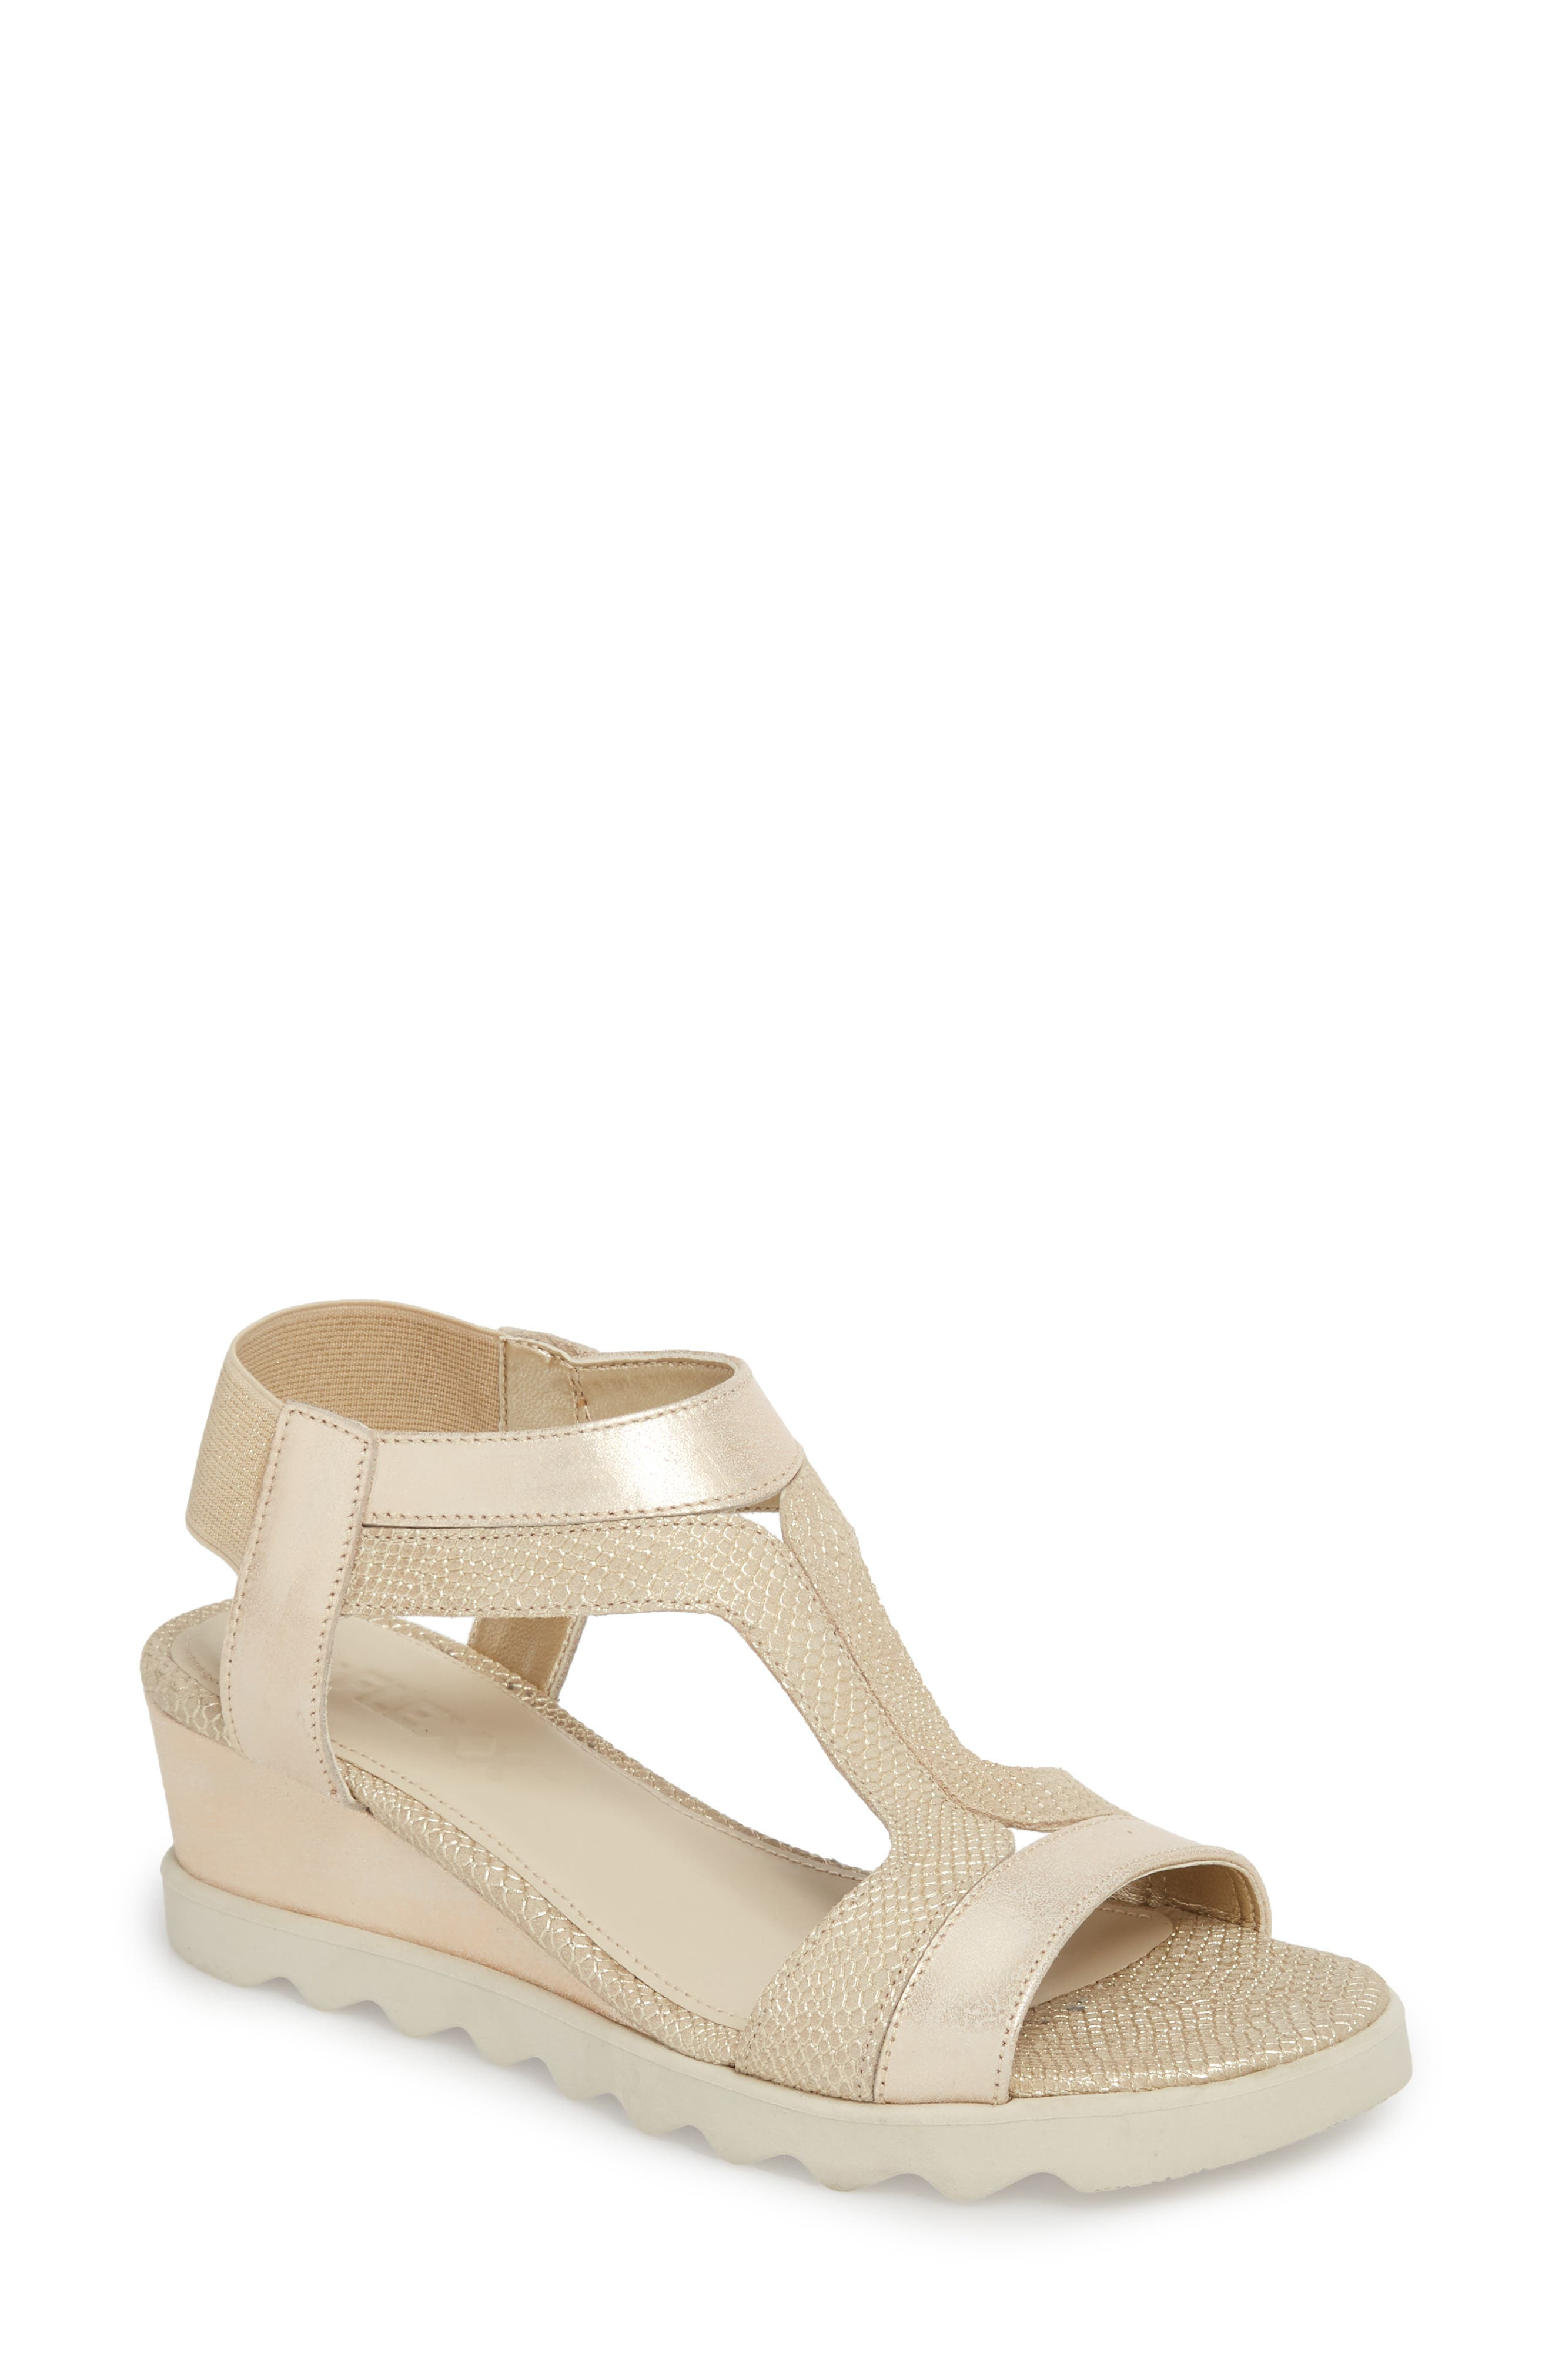 Give A Hoot Wedge Sandal,                             Main thumbnail 1, color,                             Gold Leather